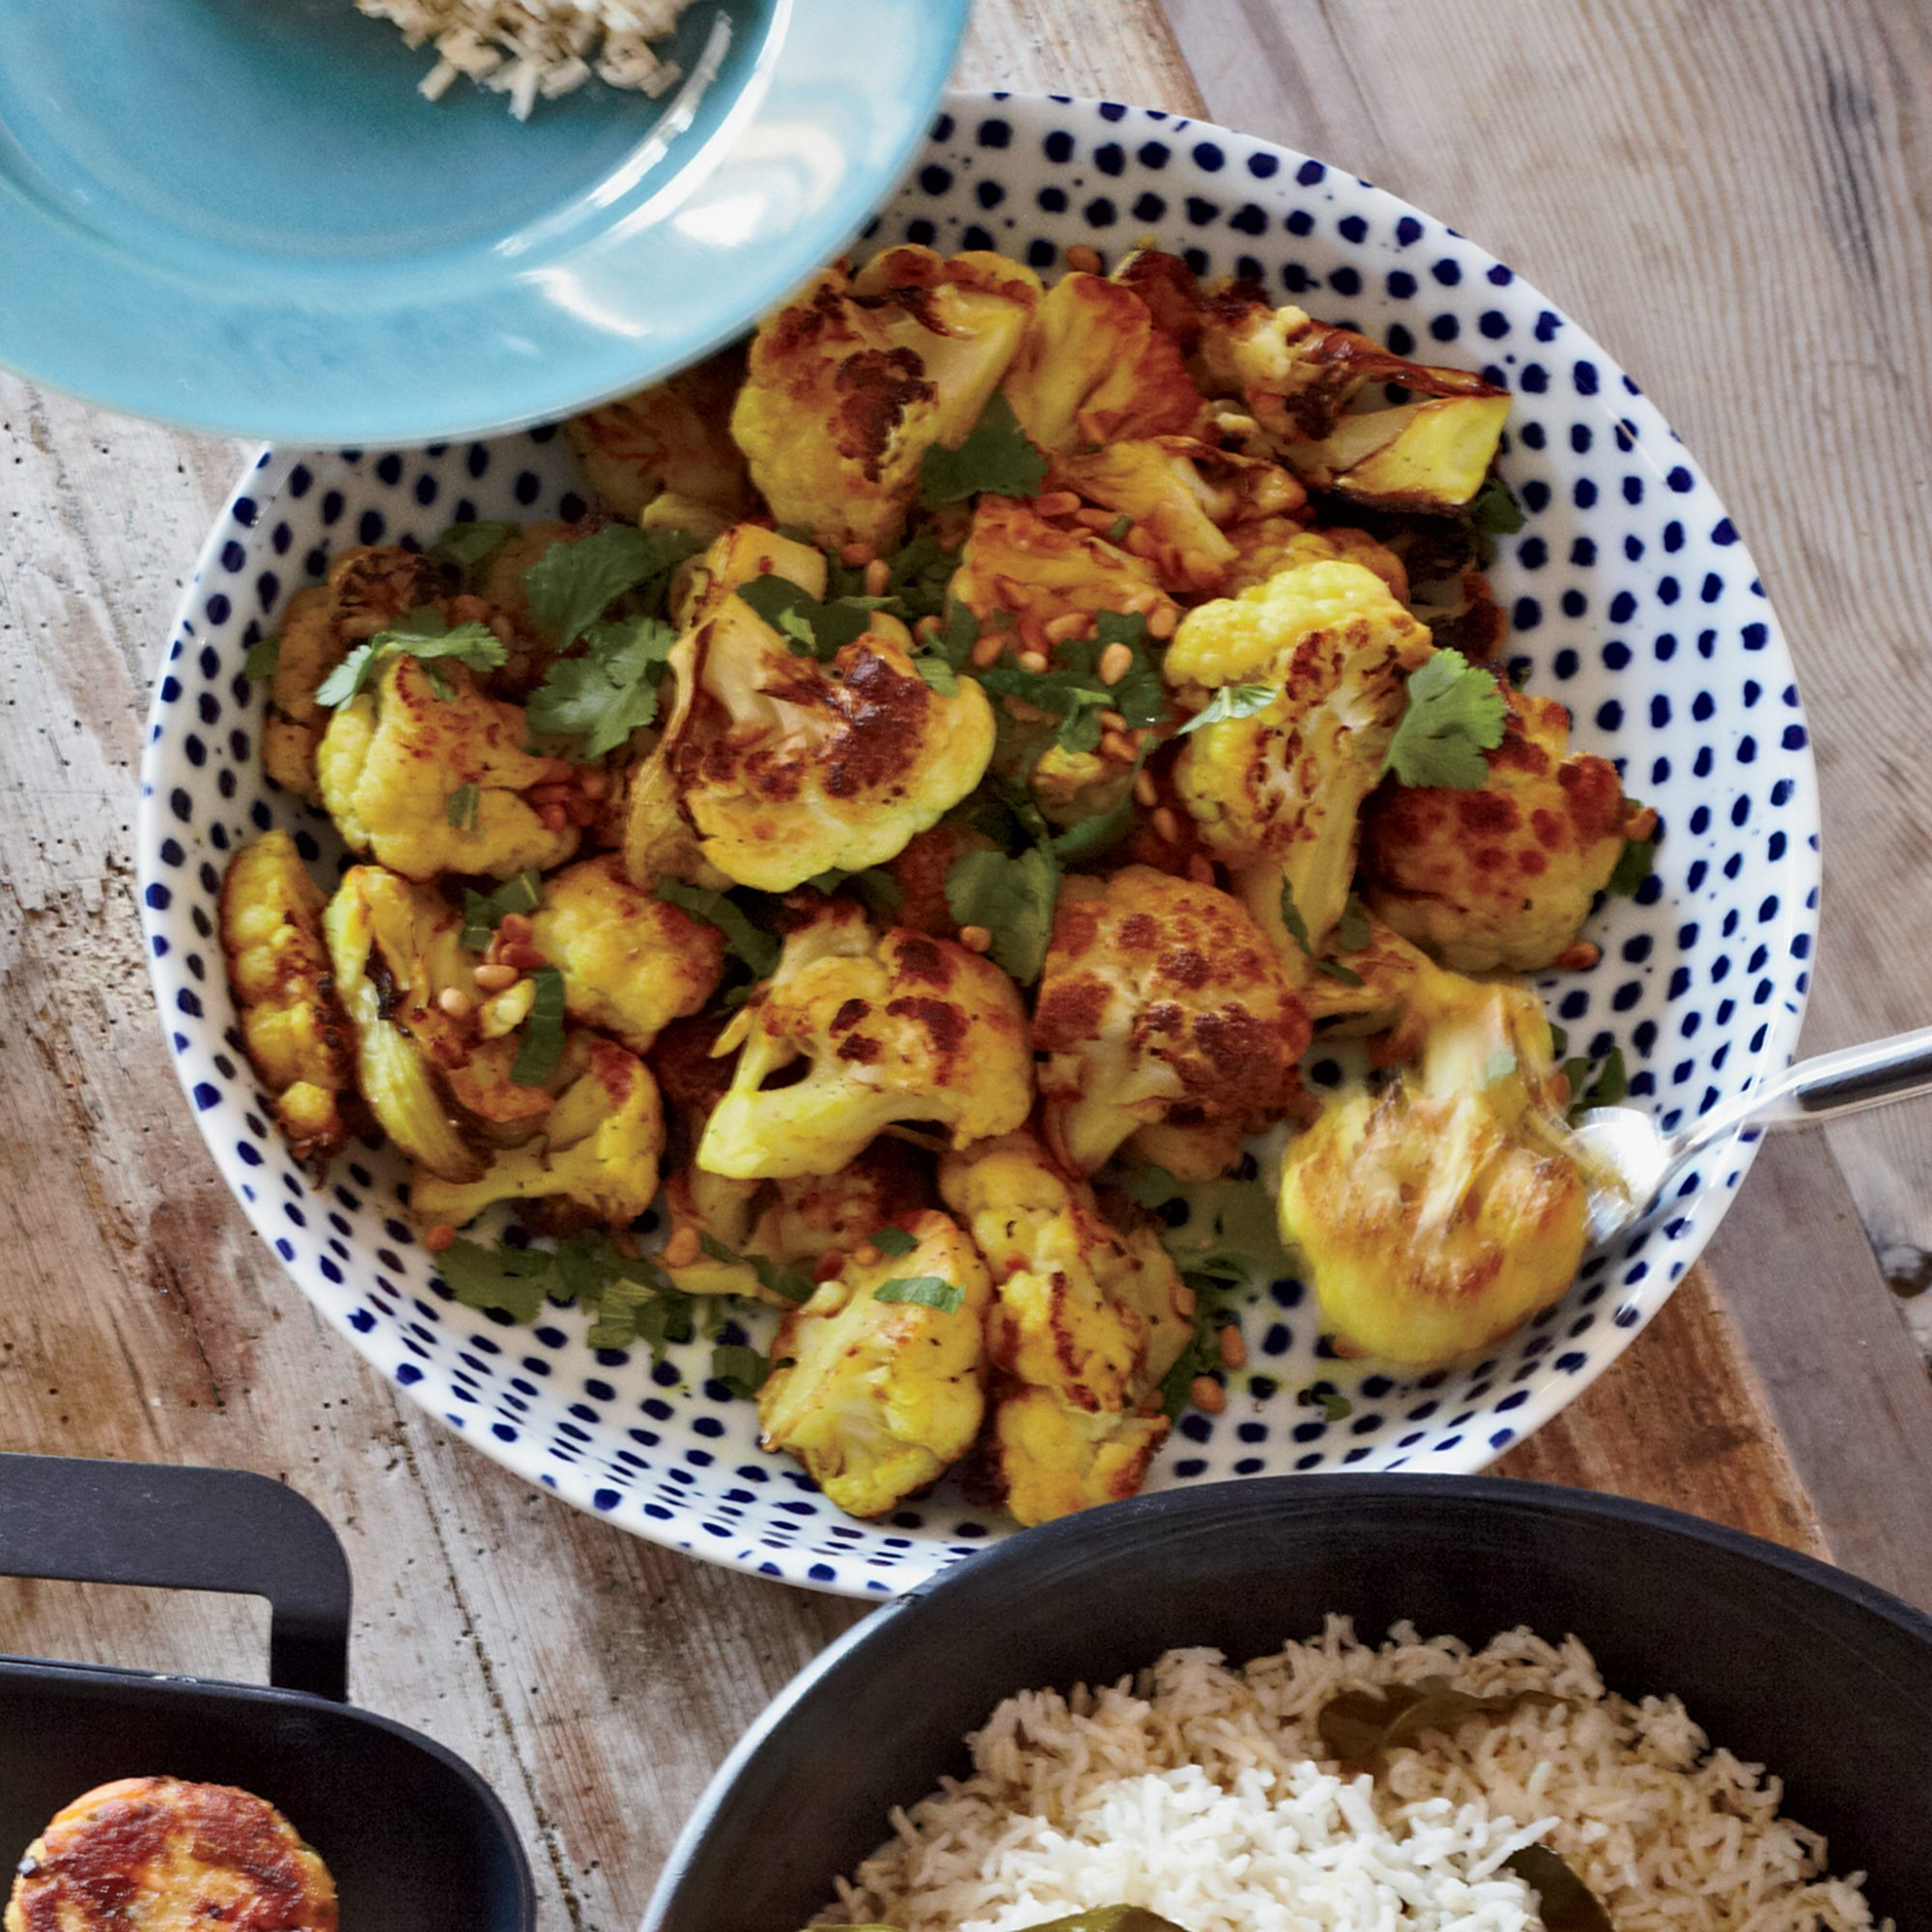 images-sys-201203-r-roasted-cauliflower-with-turmeric-and-cumin.jpg